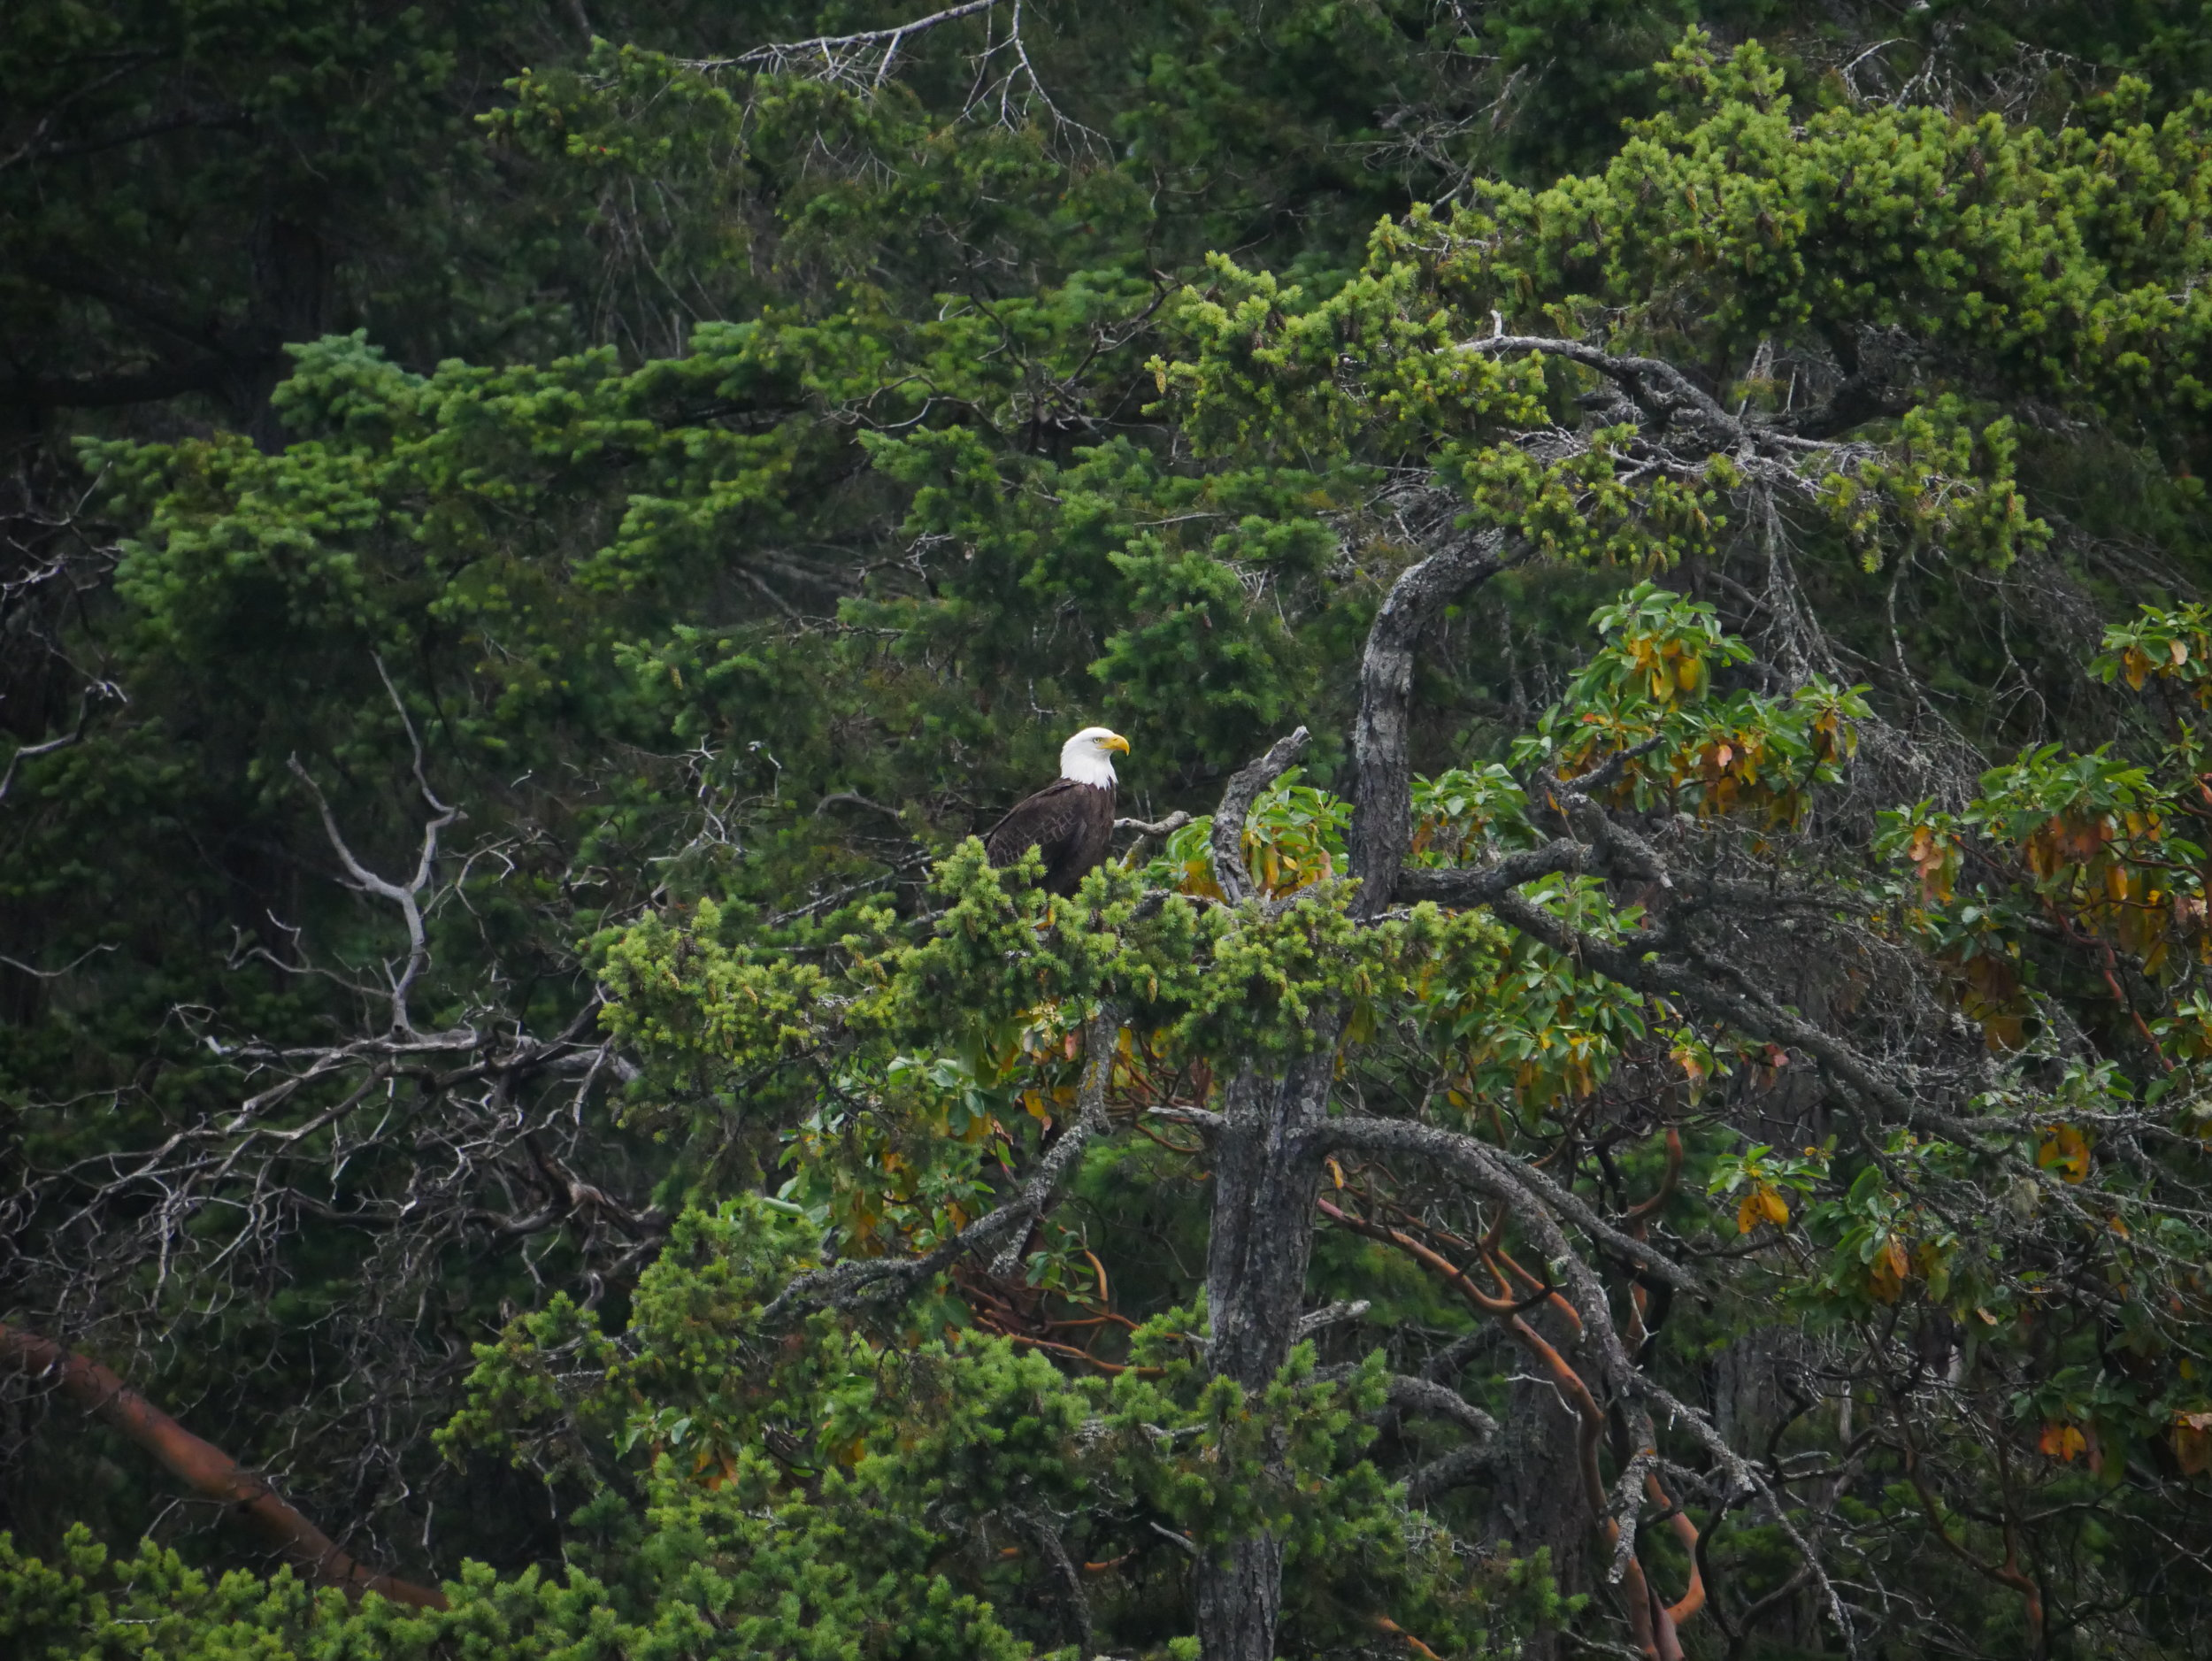 A majestic bald eagle perched in some luscious west coast greenery. Photo by Alanna Vivani.